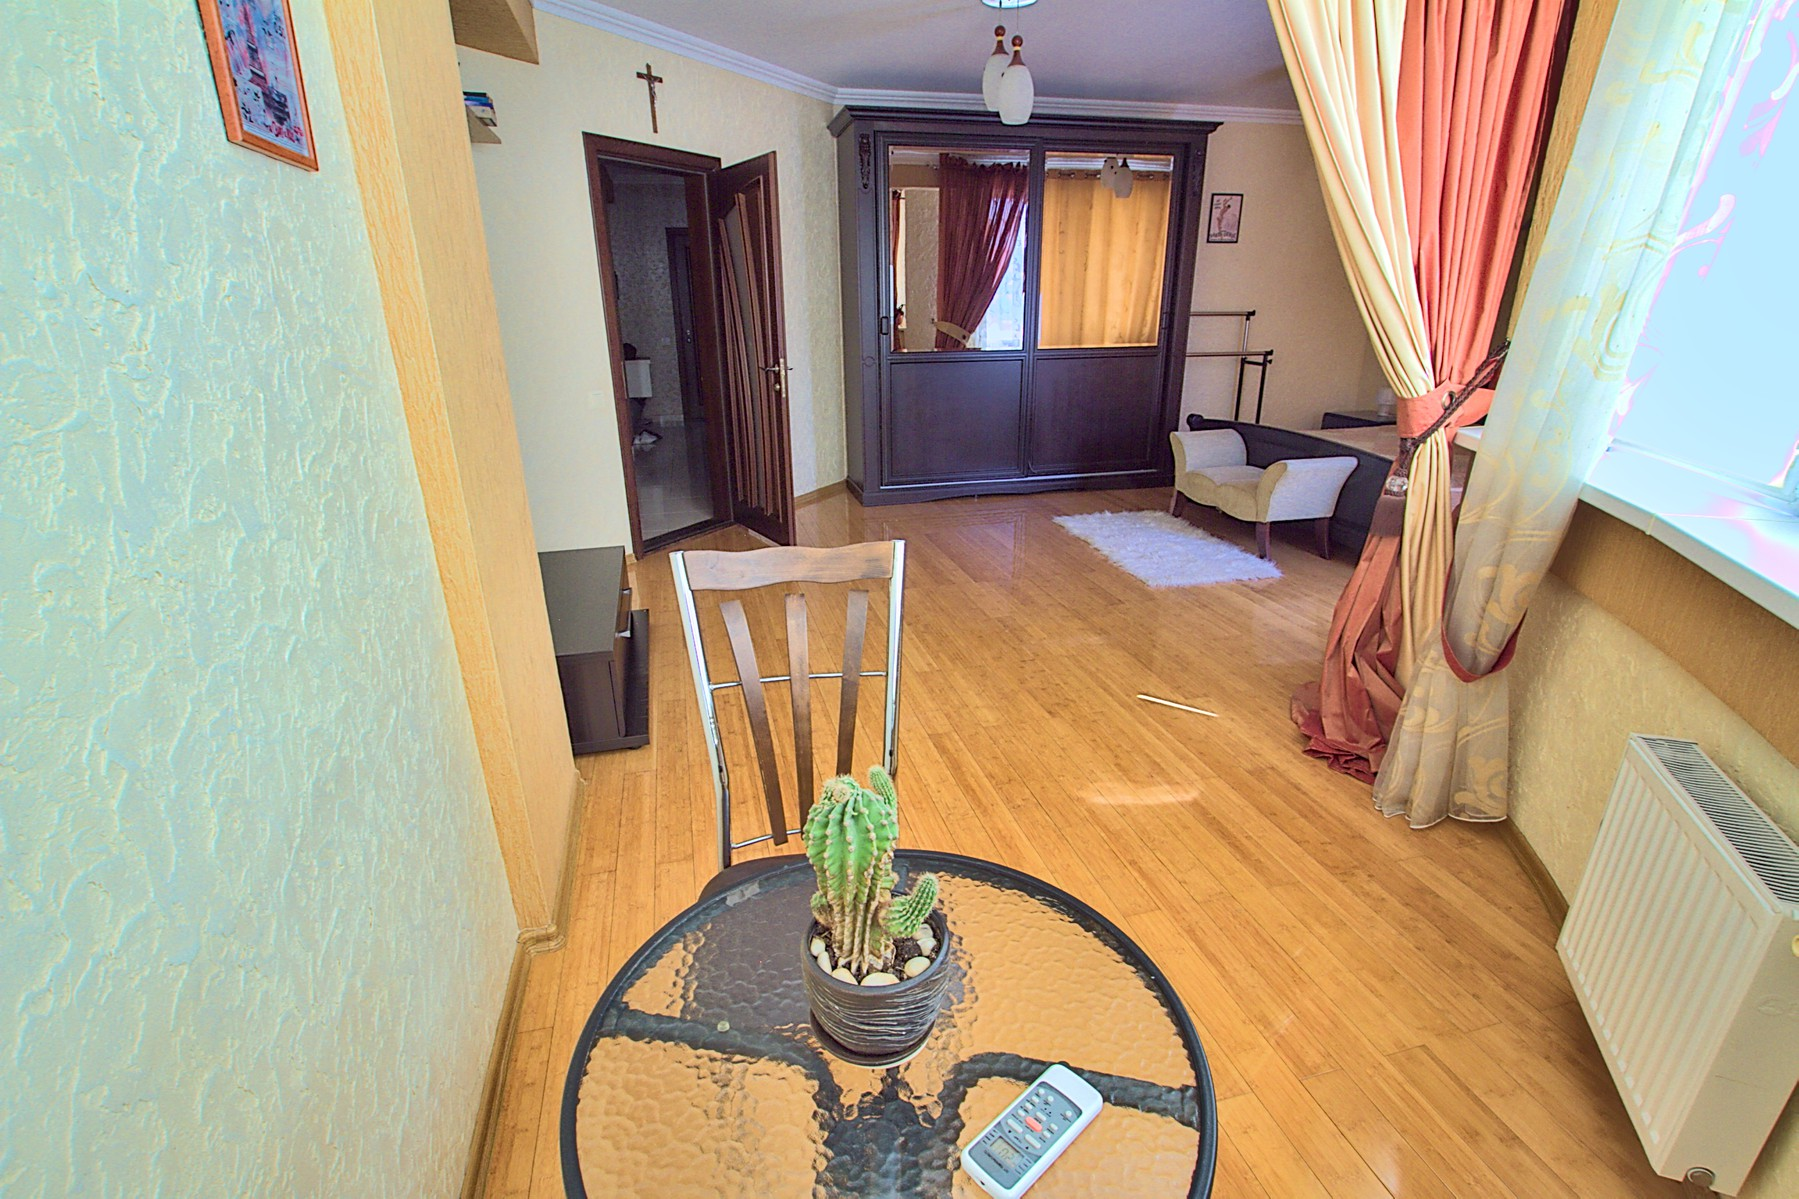 Deluxe Center Apartment is a 3 rooms apartment for rent in Chisinau, Moldova